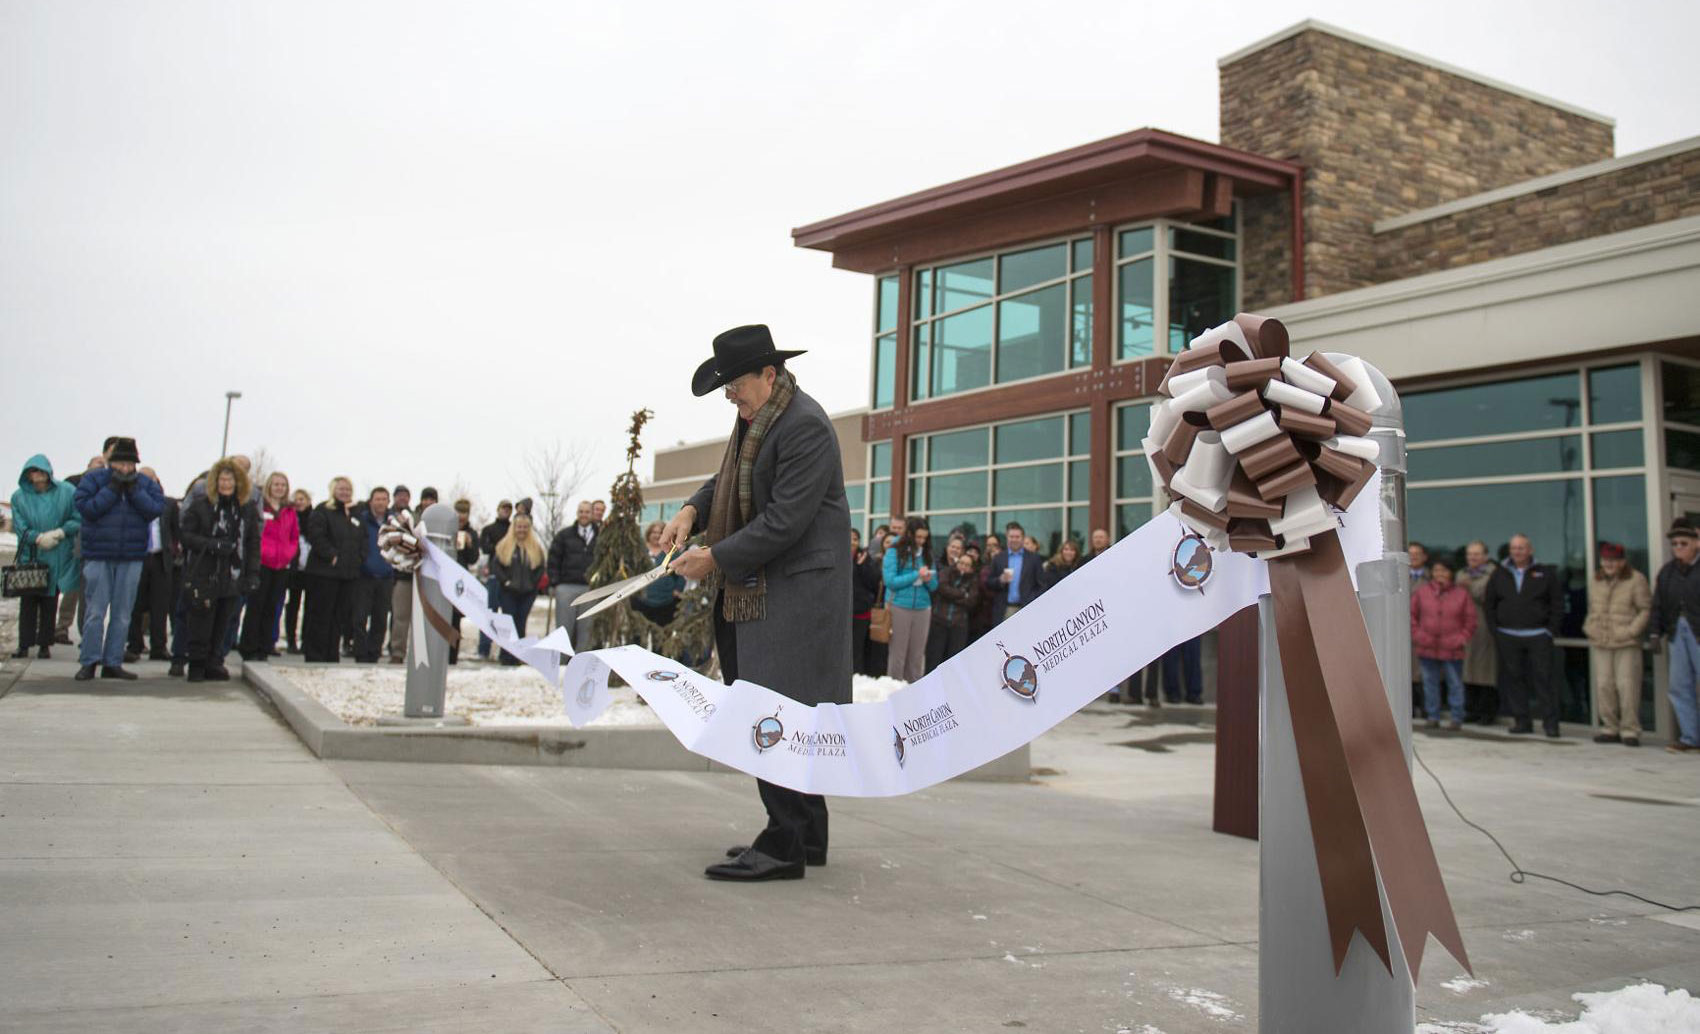 Tim Powers, chief executive officer, cuts the ribbon during the dedication for a new medical plaza in December 2016 at North Canyon Medical Center in Gooding. DREW NASH, TIMES-NEWS FILE PHOTO